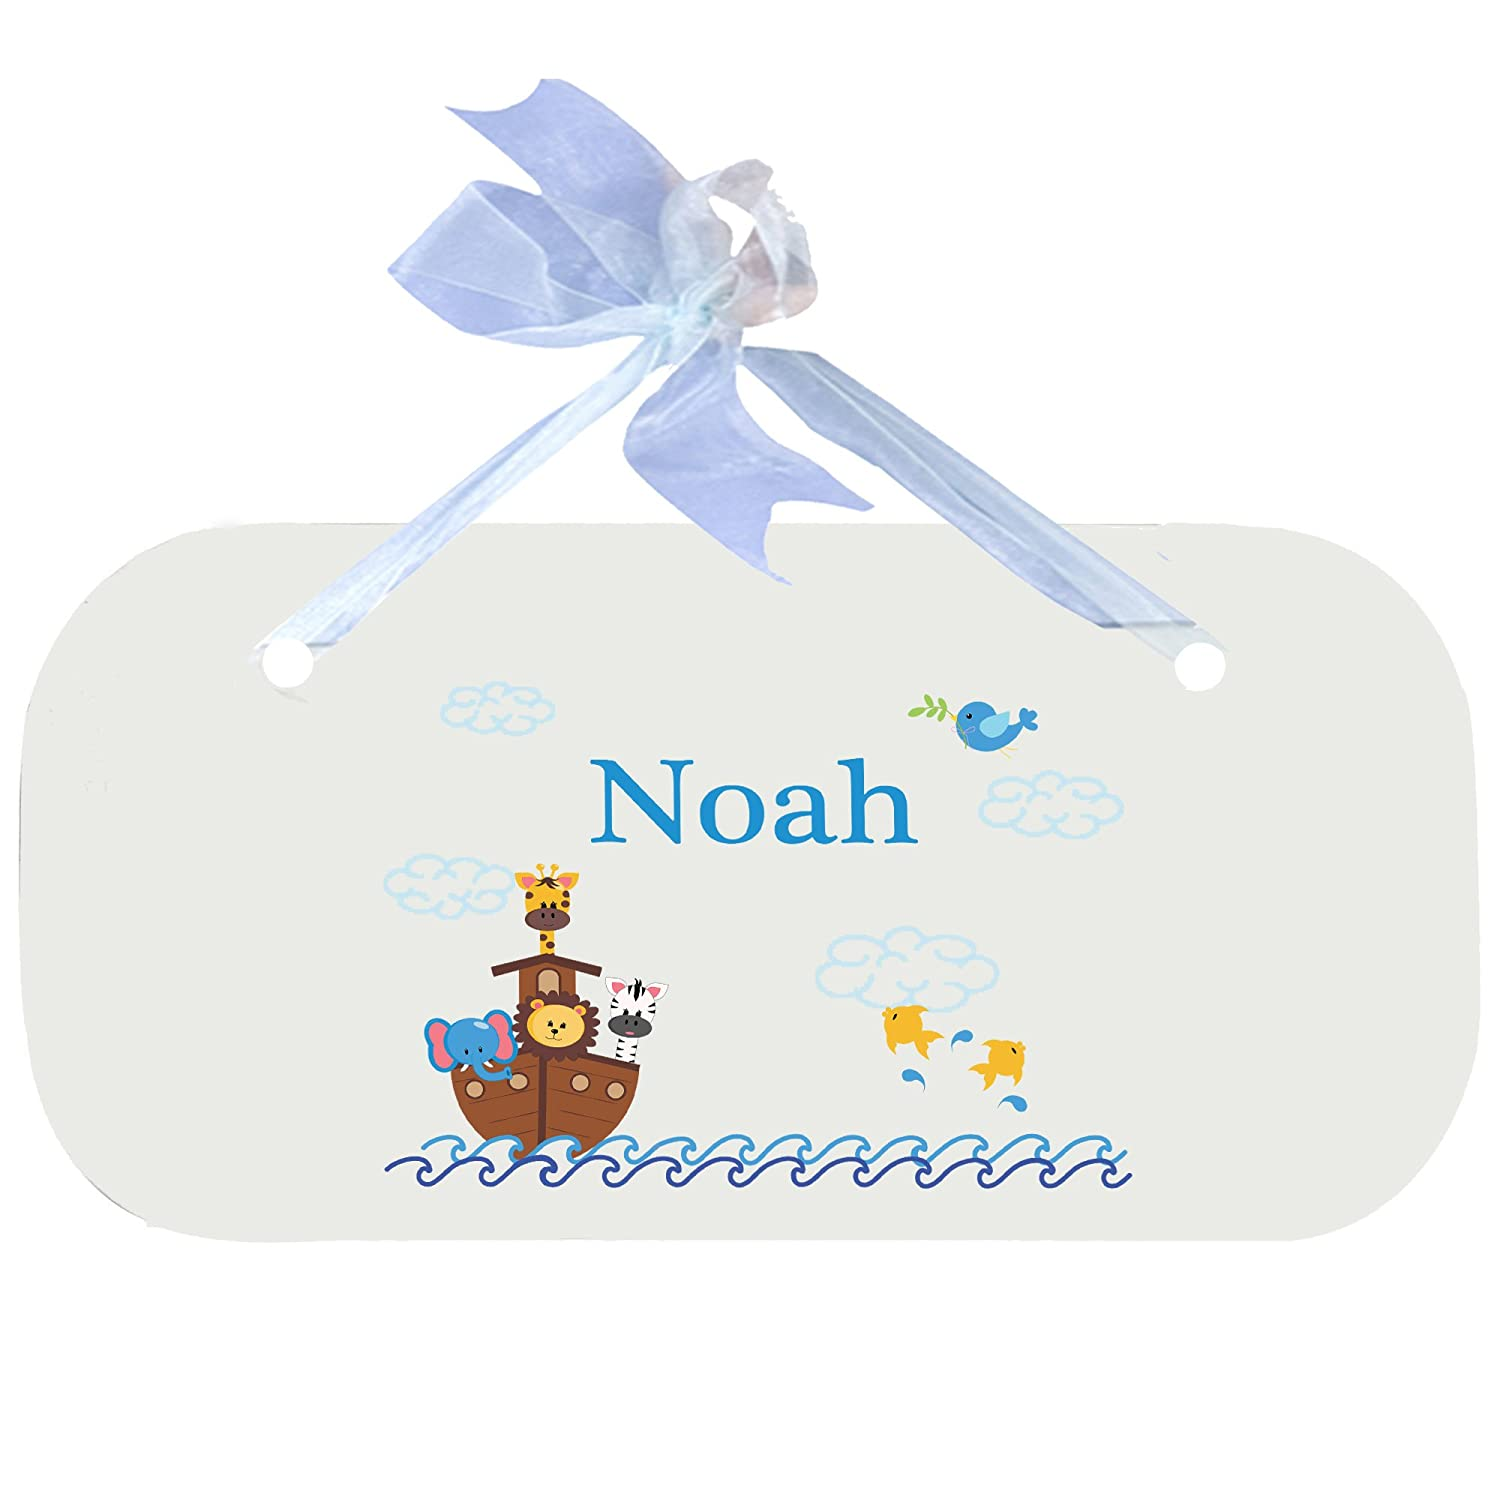 Personalized Noahs Ark Nursery Door Hanger Plaque with blue ribbon MyBambino